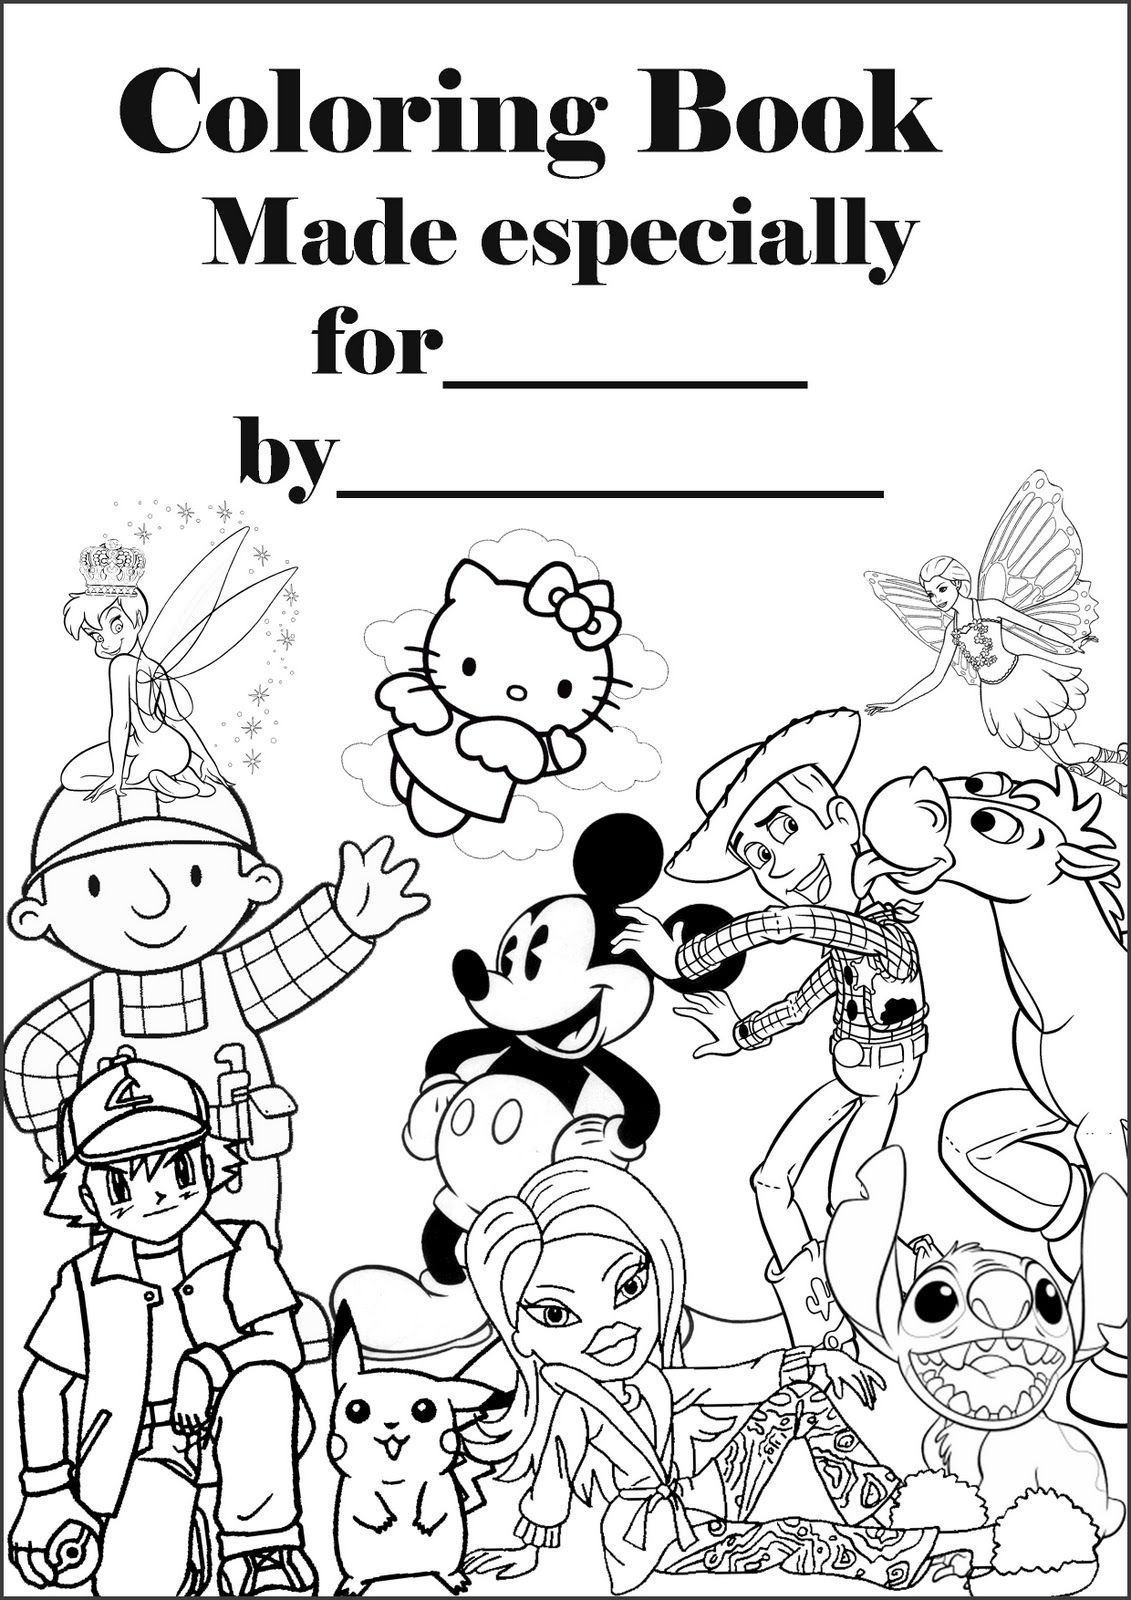 Spongebob Coloring Pages Personalized Coloring Book Coloring Books Fairy Coloring Pages